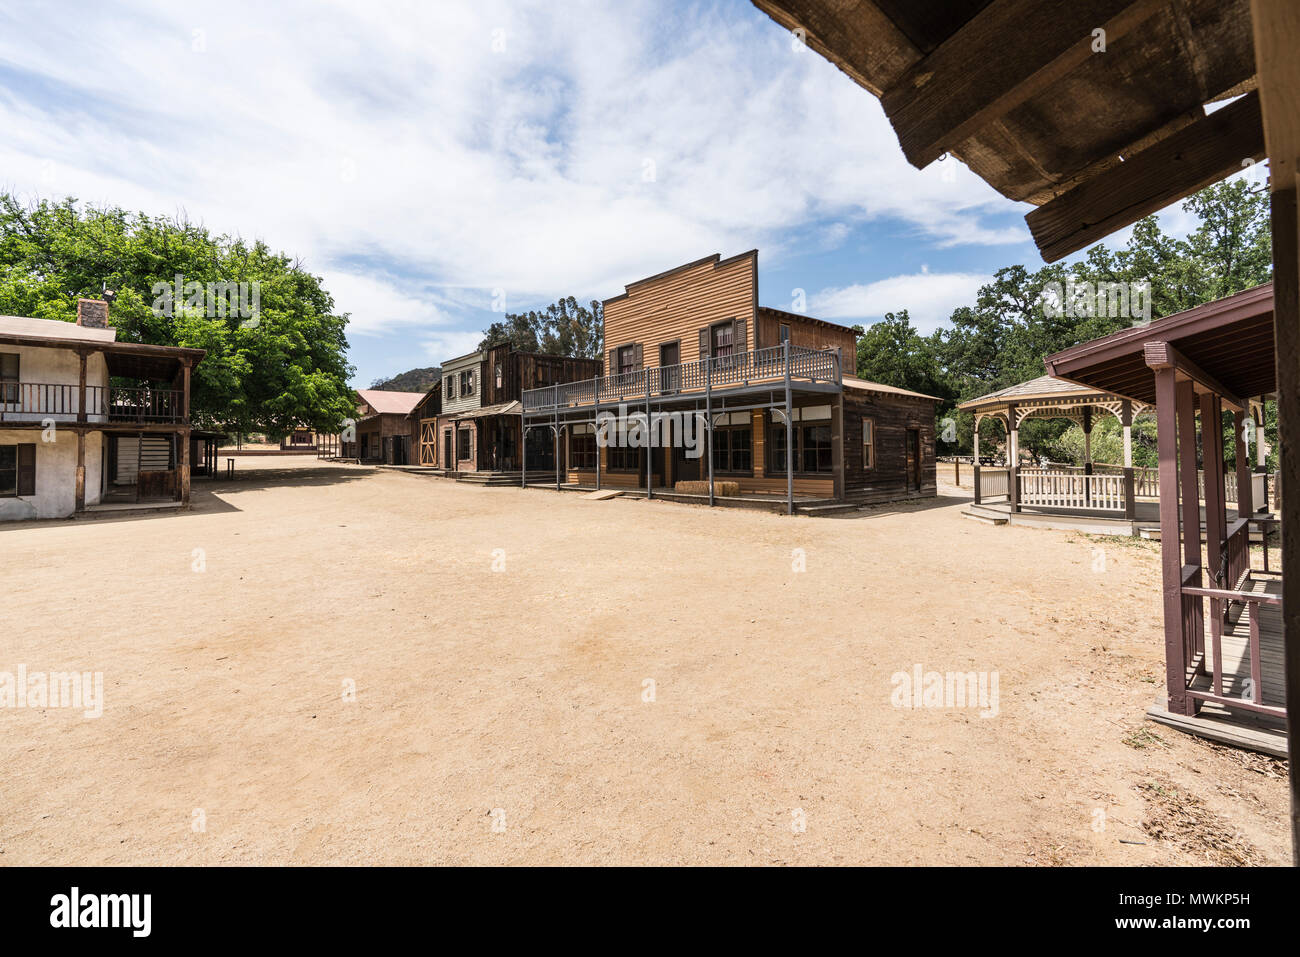 Historic movie set buildings owned by US National Park Service at Paramount Ranch in the Santa Monica Mountains National Recreation Area near Los Ange - Stock Image